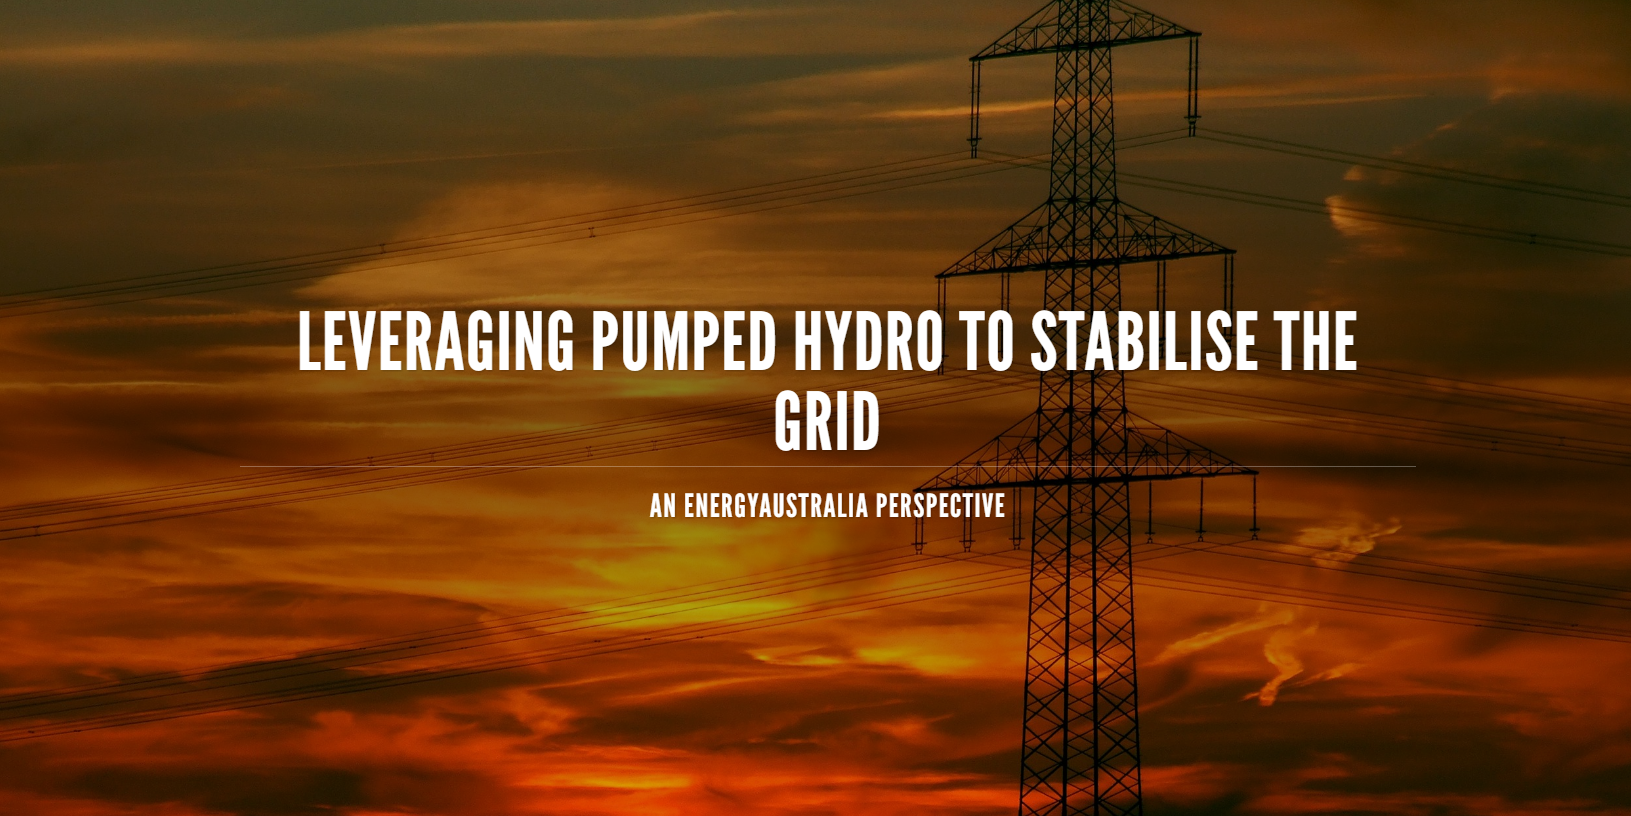 Leveraging Pumped Hydro to Stabilise the Grid: An EnergyAustralia Perspective